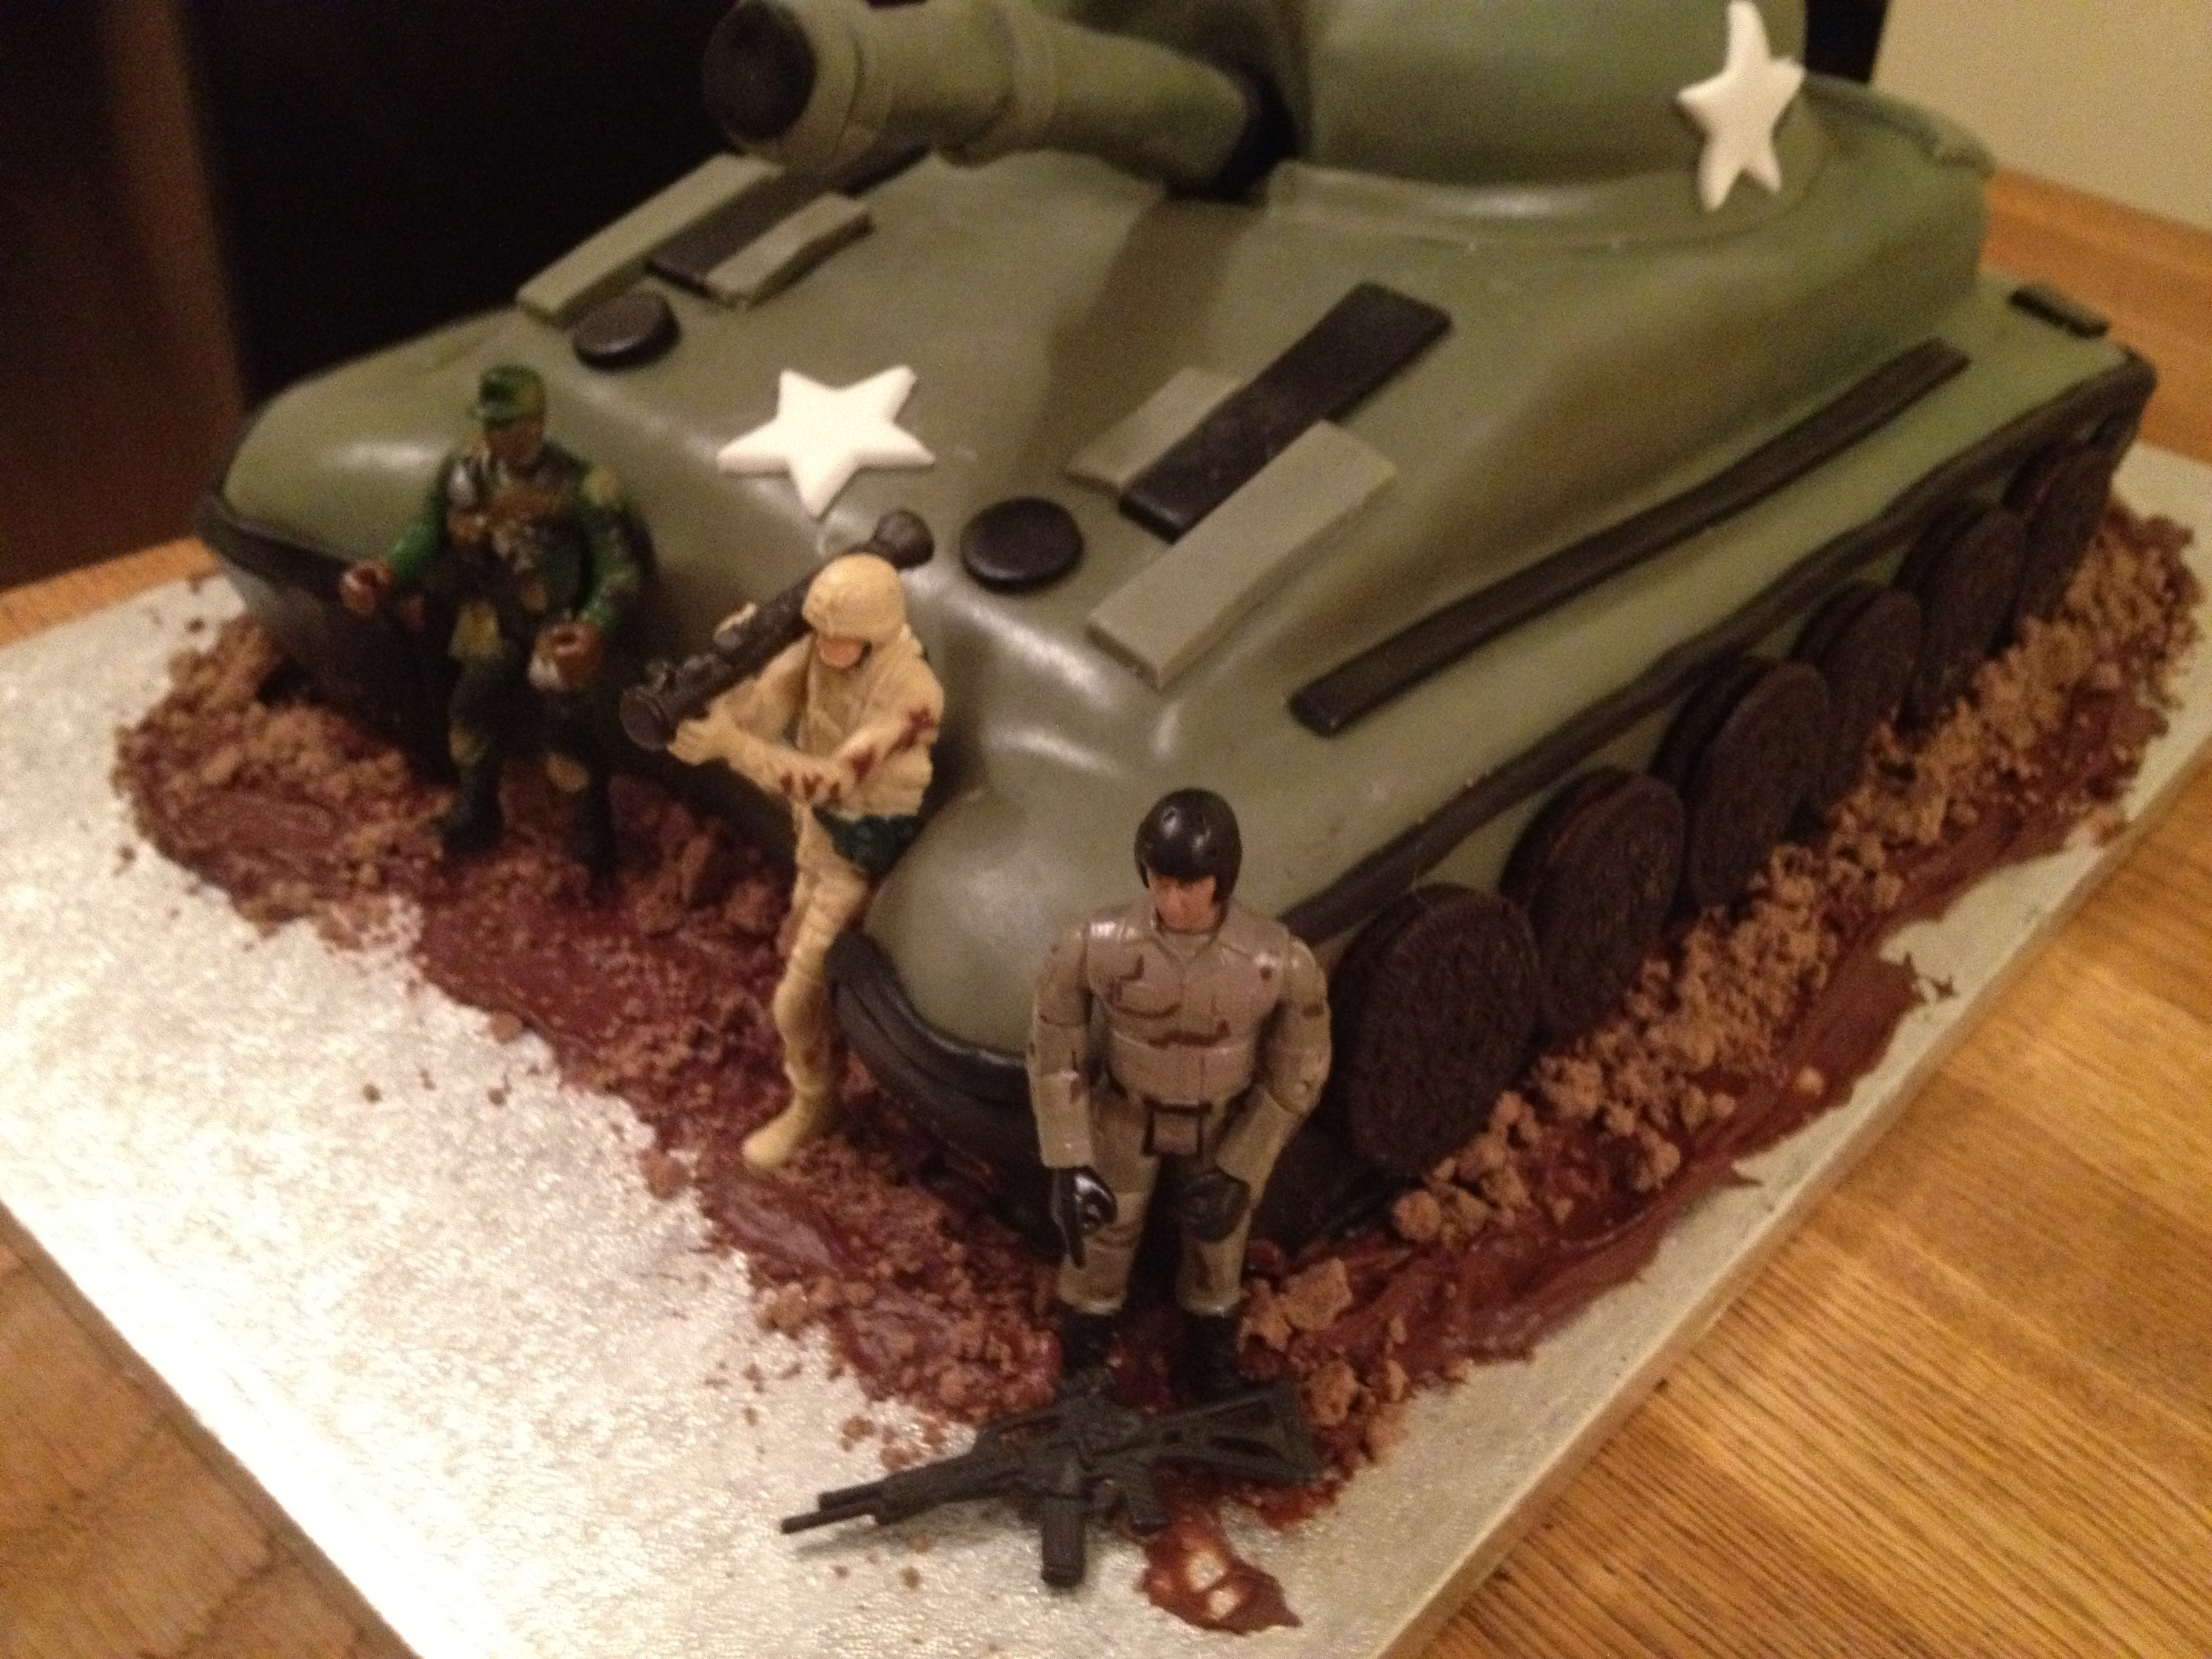 army tank birthday cake picture gallery ; army-tank-birthday-cake-picture-gallery-army-tank-birthday-cake-12-creative-cakes-by-kaz